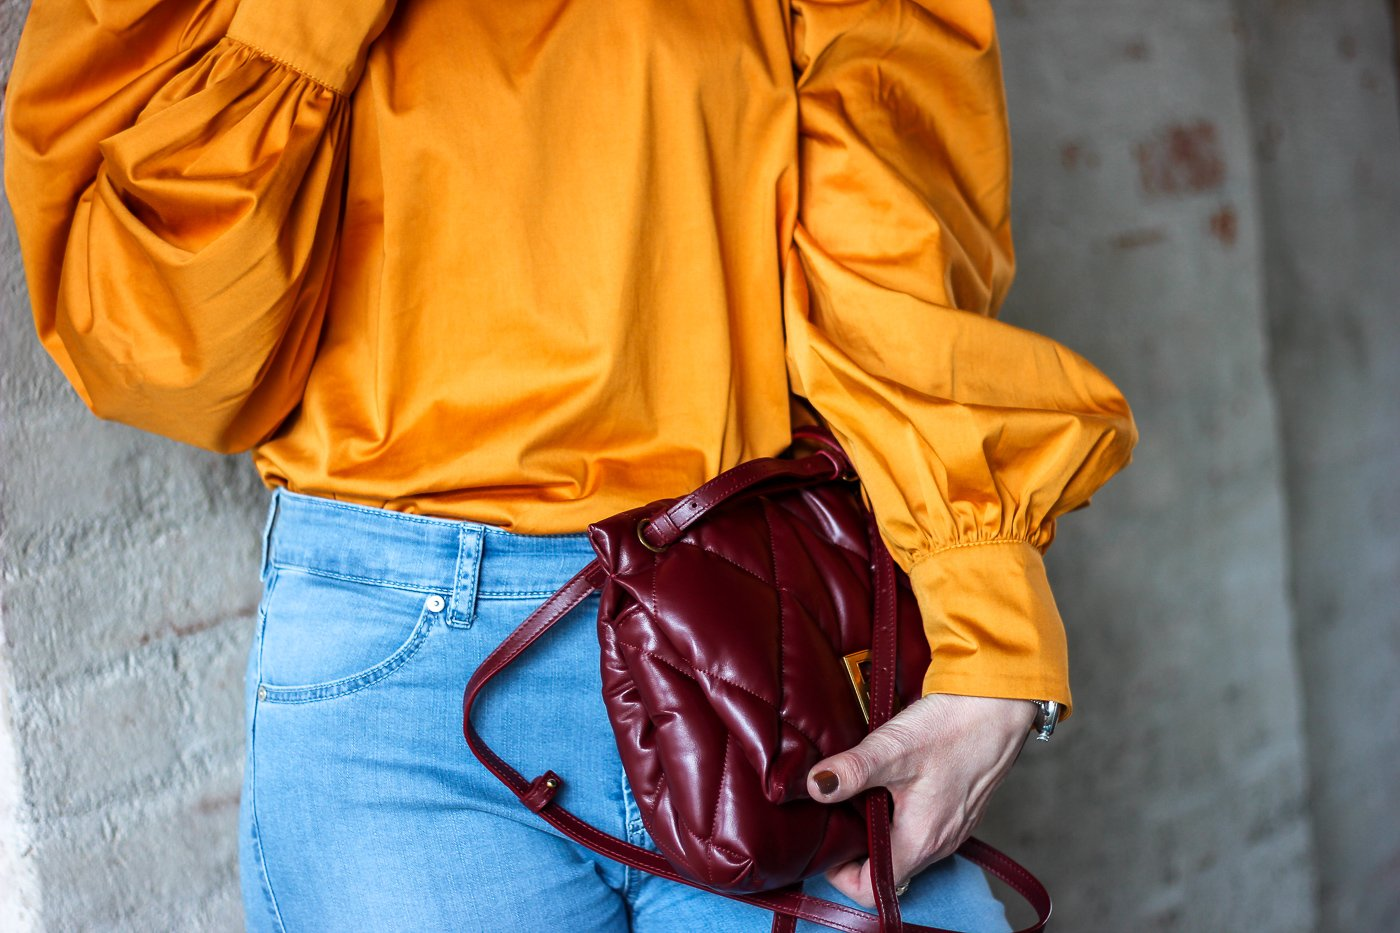 conny doll lifestyle: Details, orange Bluse, rote Tasche, Balenciaga